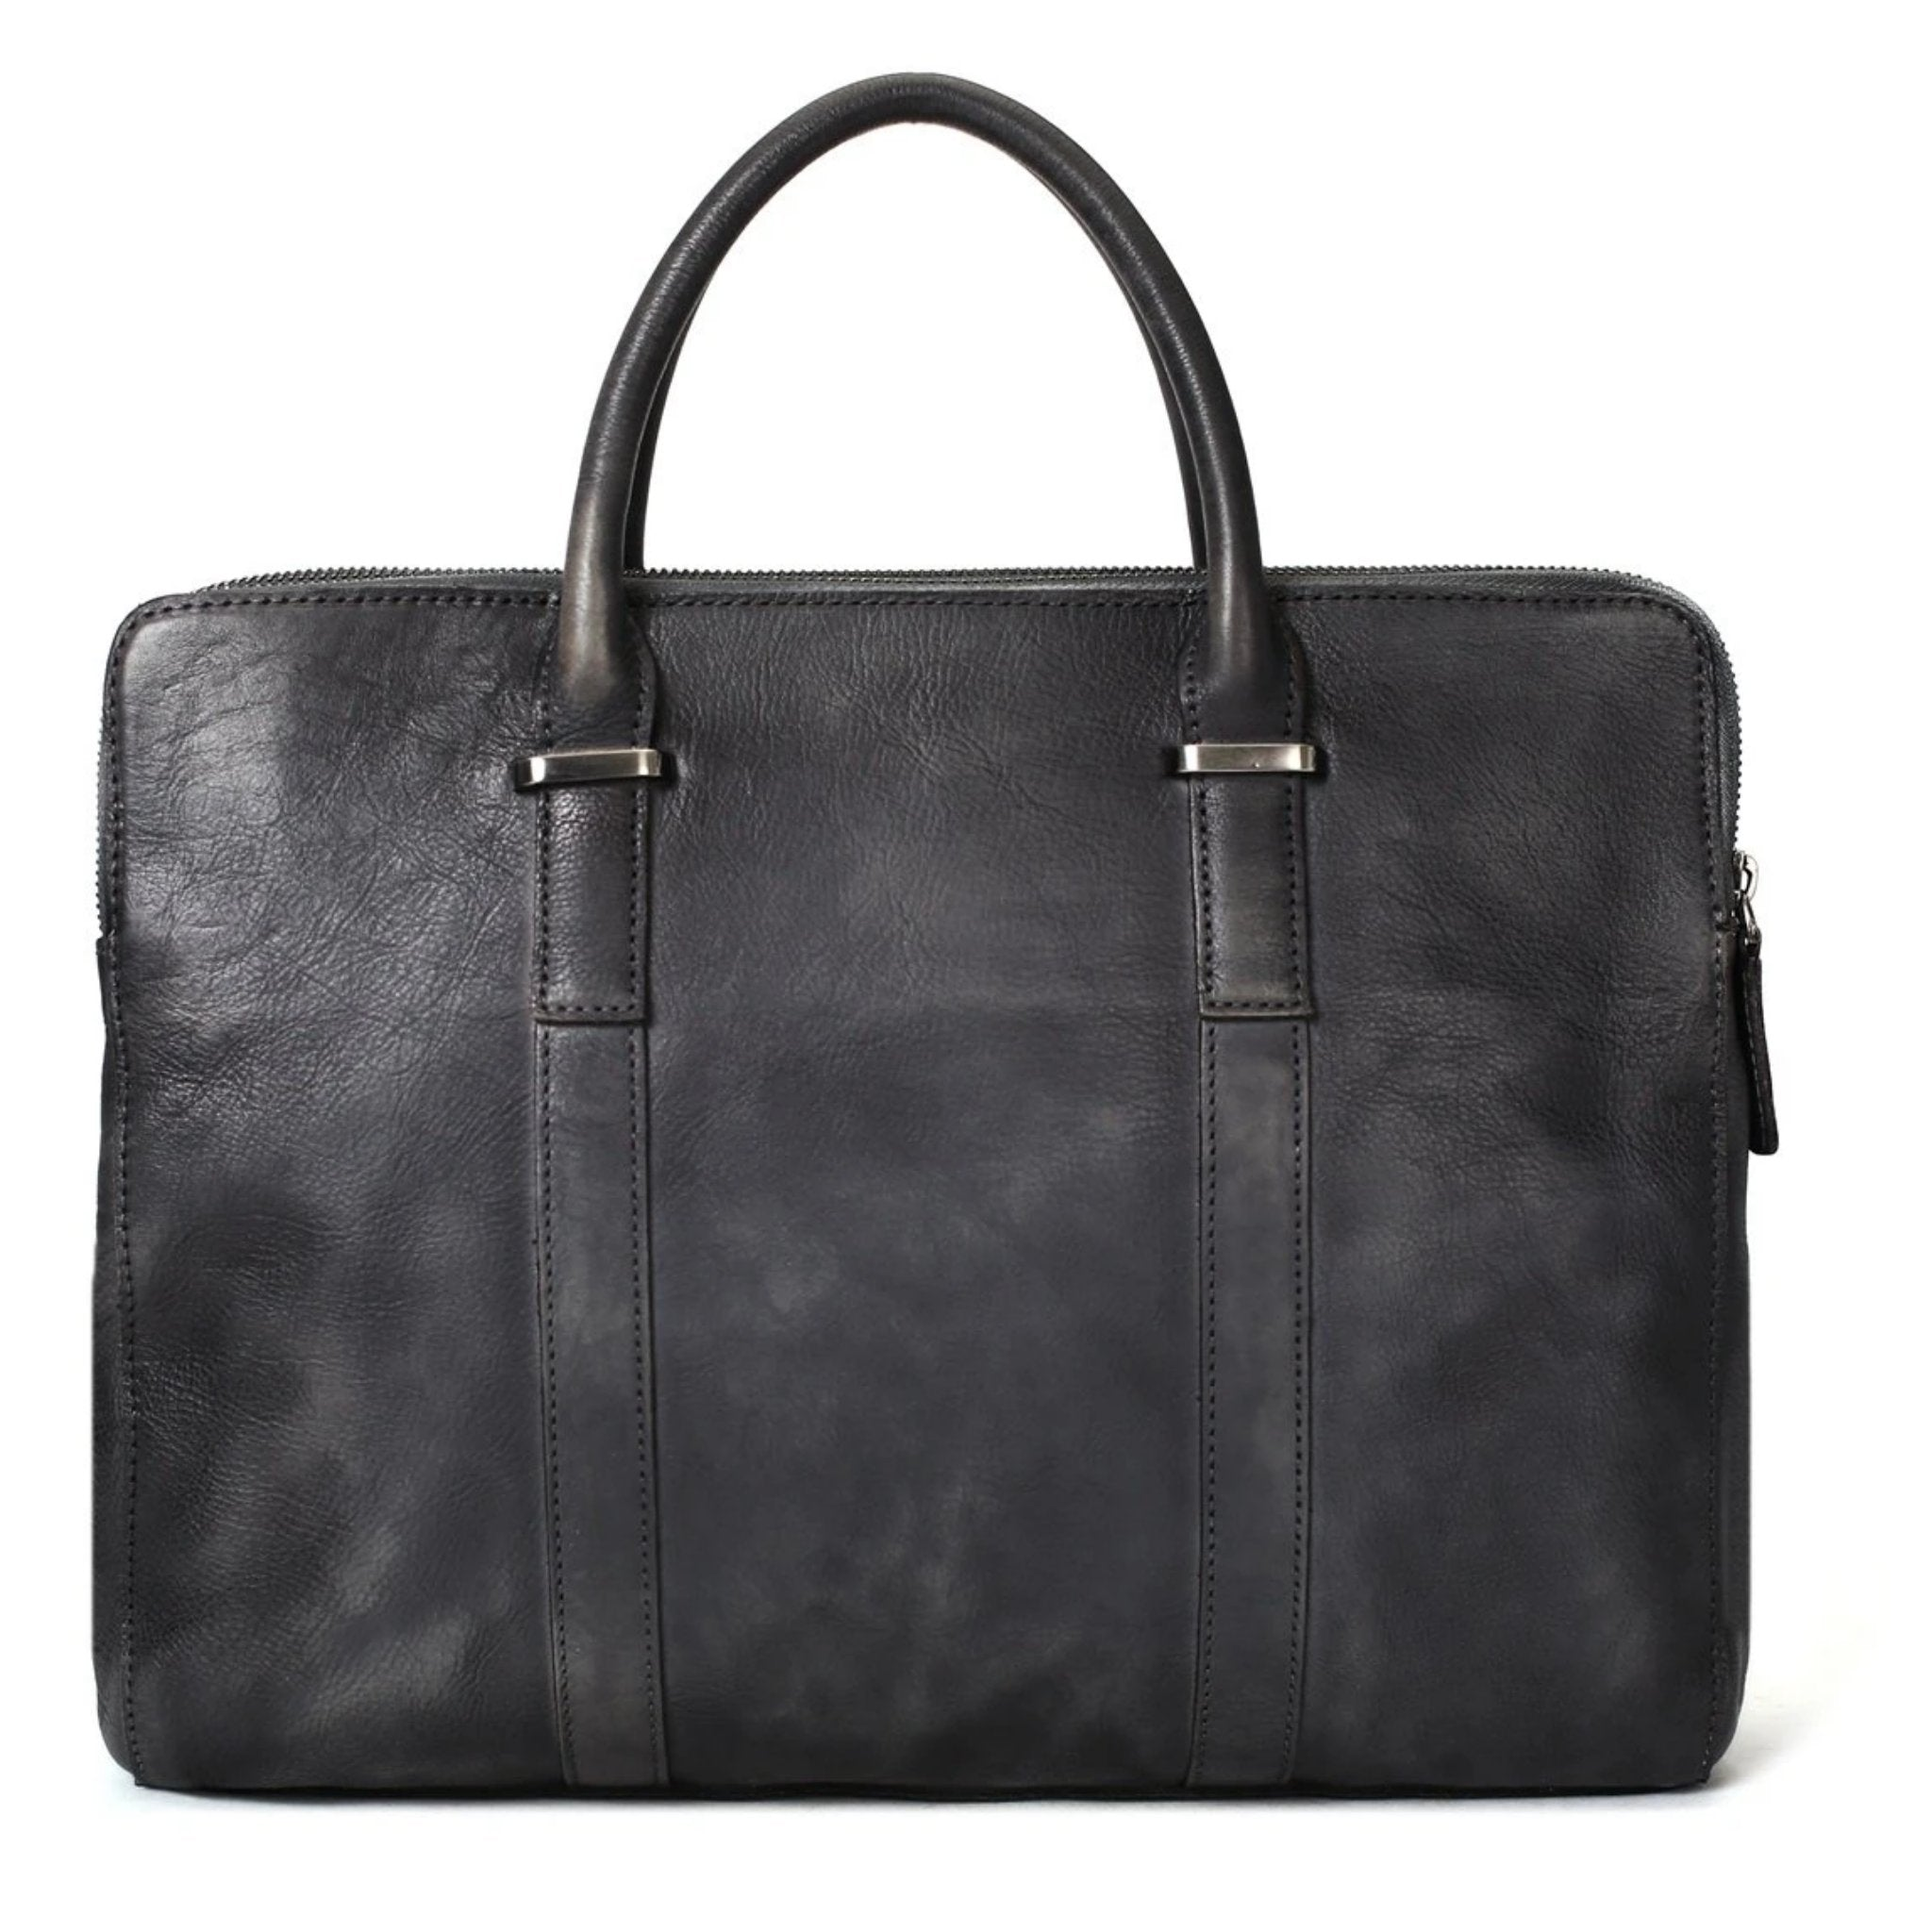 Vintage Vegetable Tanned Leather Briefcase - Dark Grey - Blue Sebe